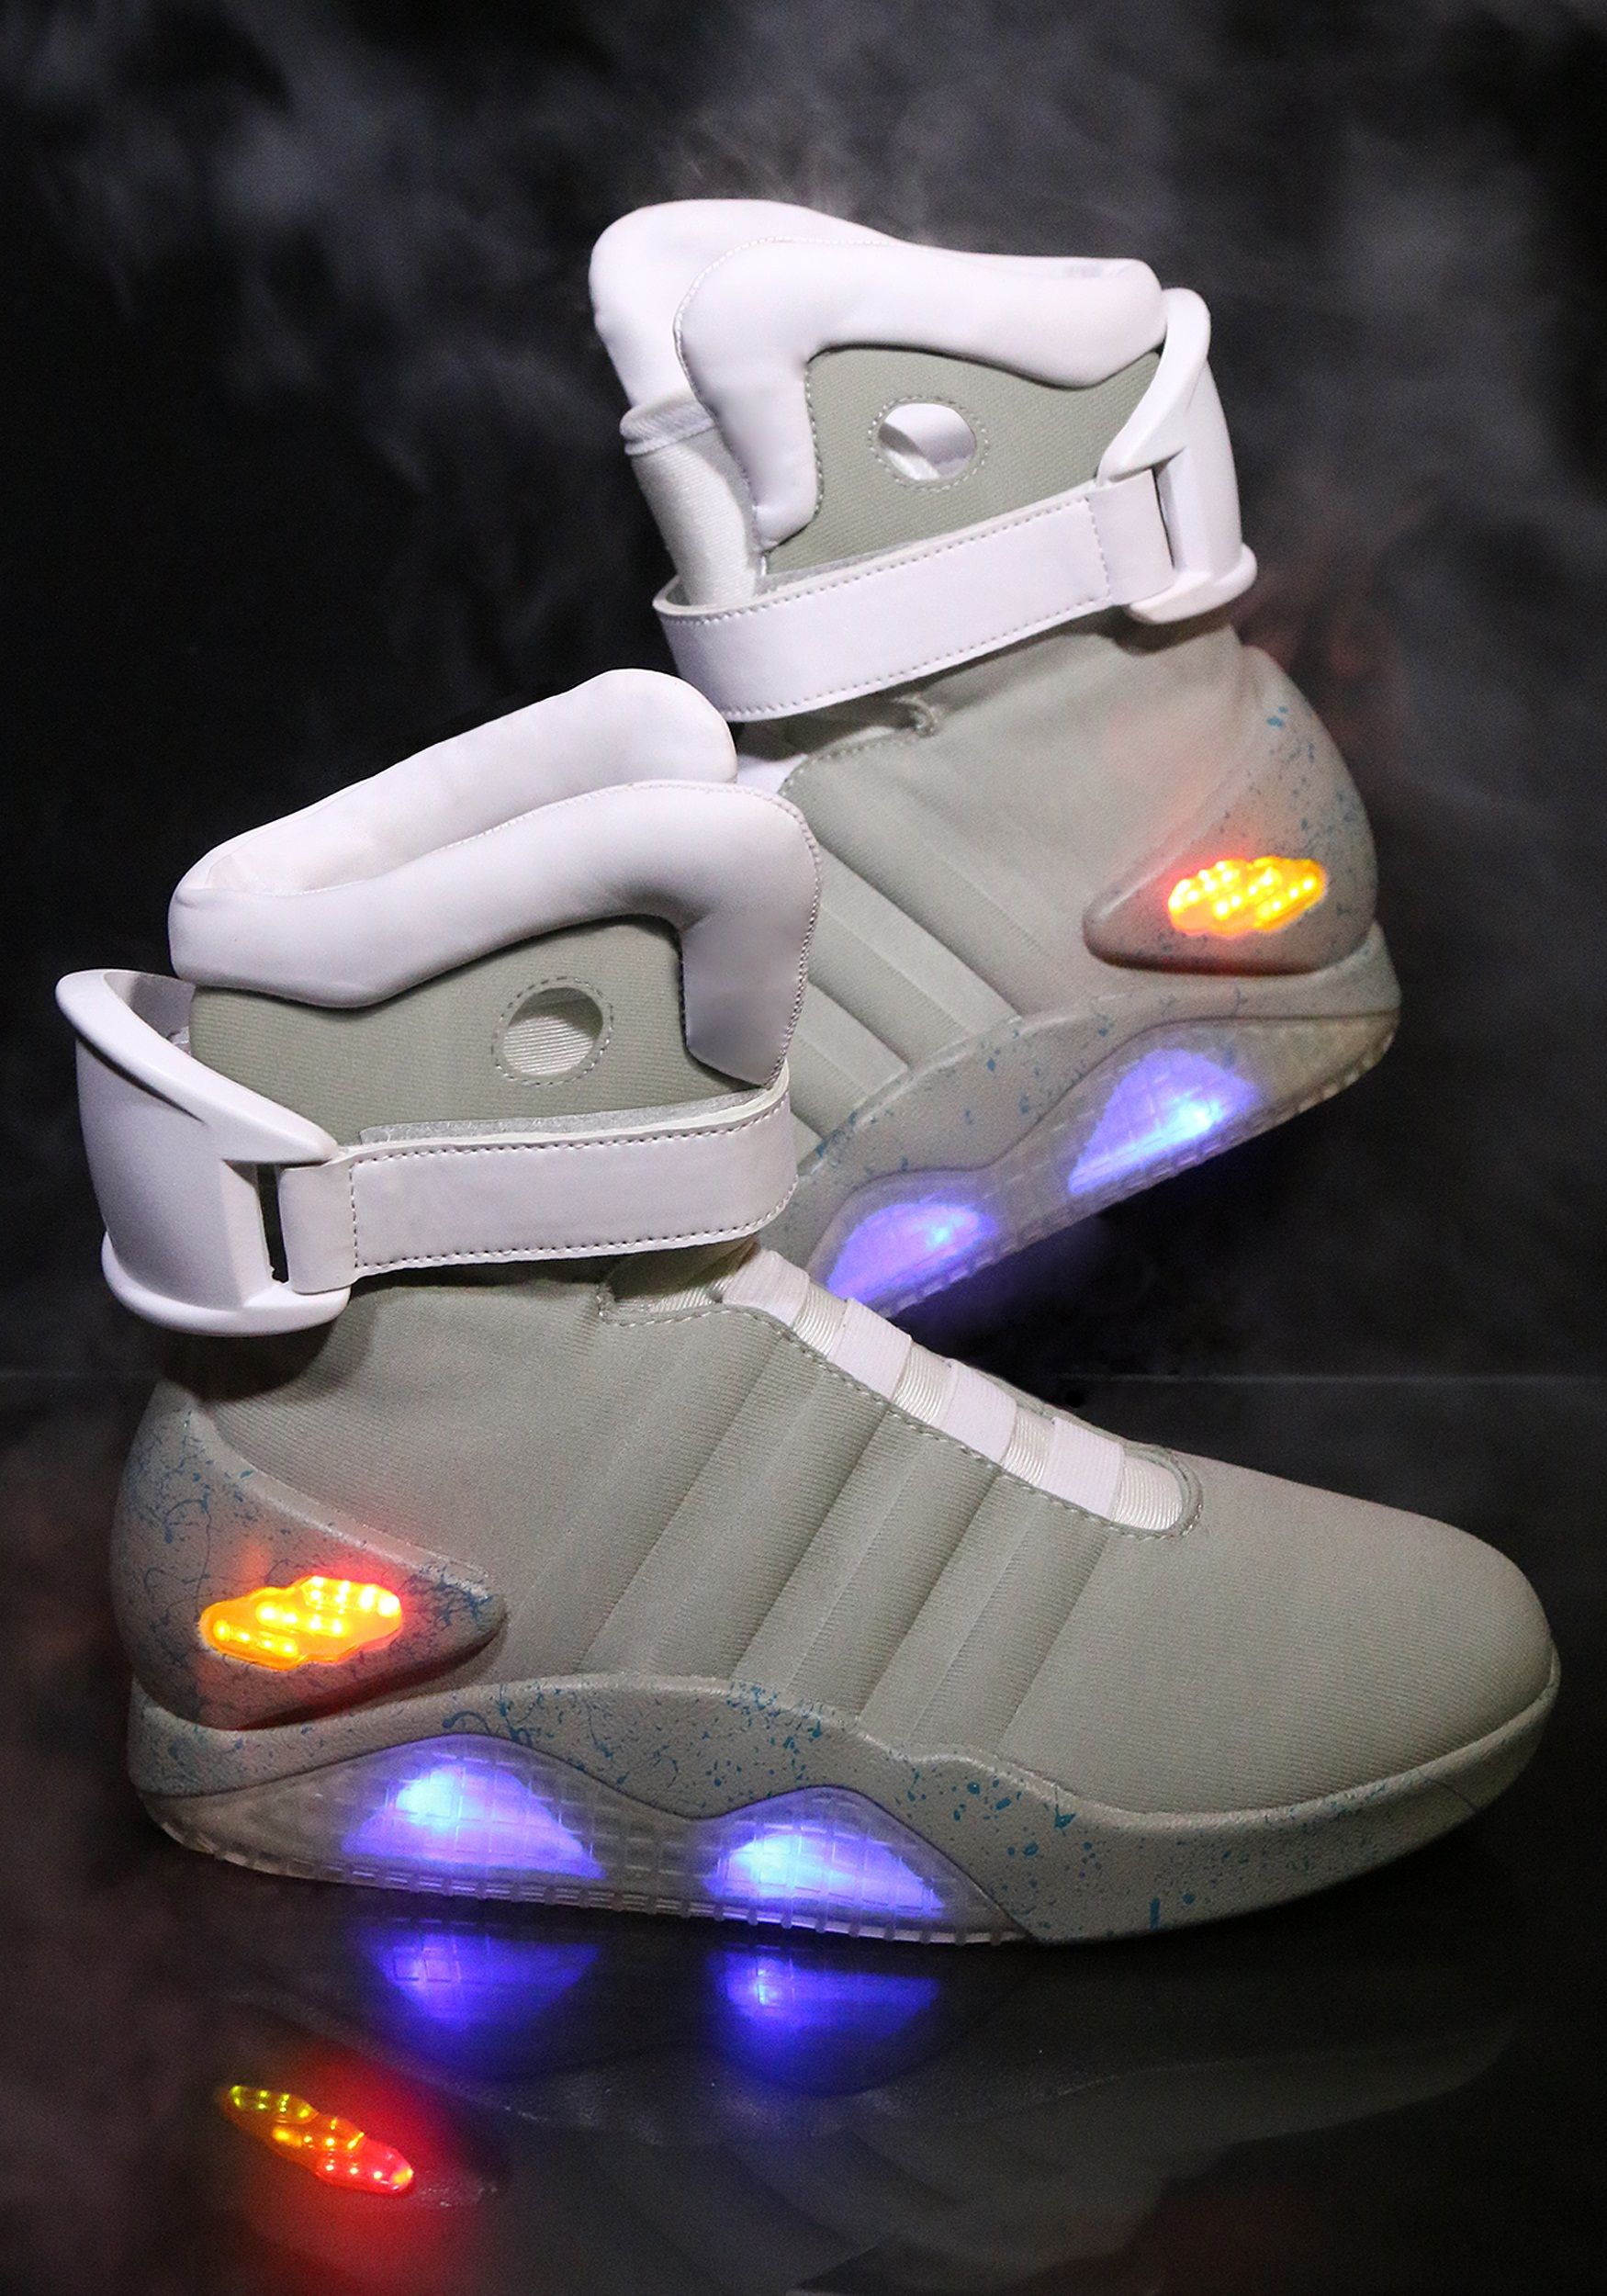 sneakers for cheap 7bda7 afc0e Back to the Future 2 Light Up Shoes Now you can purchase Back To The Future  - Marty McFly s light up shoes. (well almost)  tech  geek